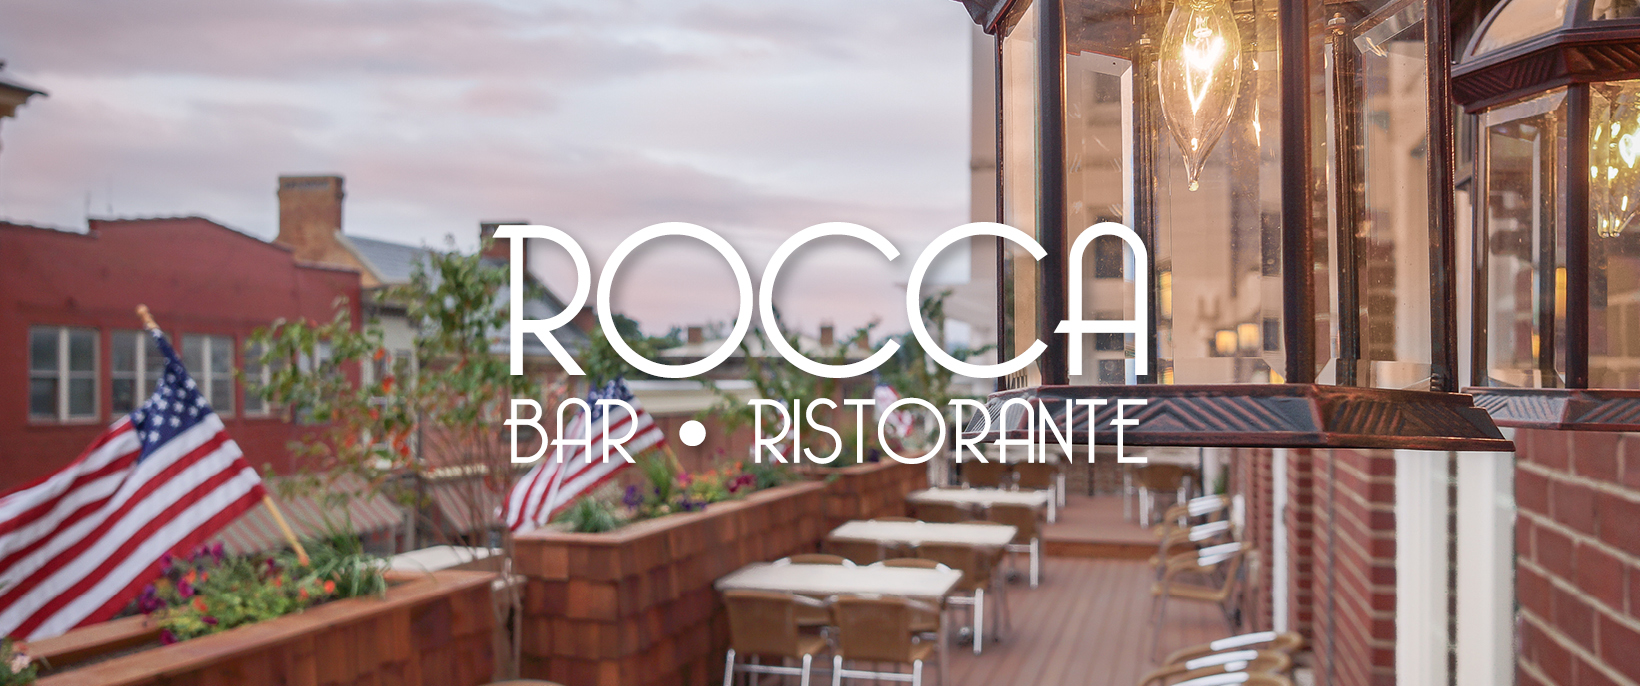 Balcony at the Ricco Bar Ristorante